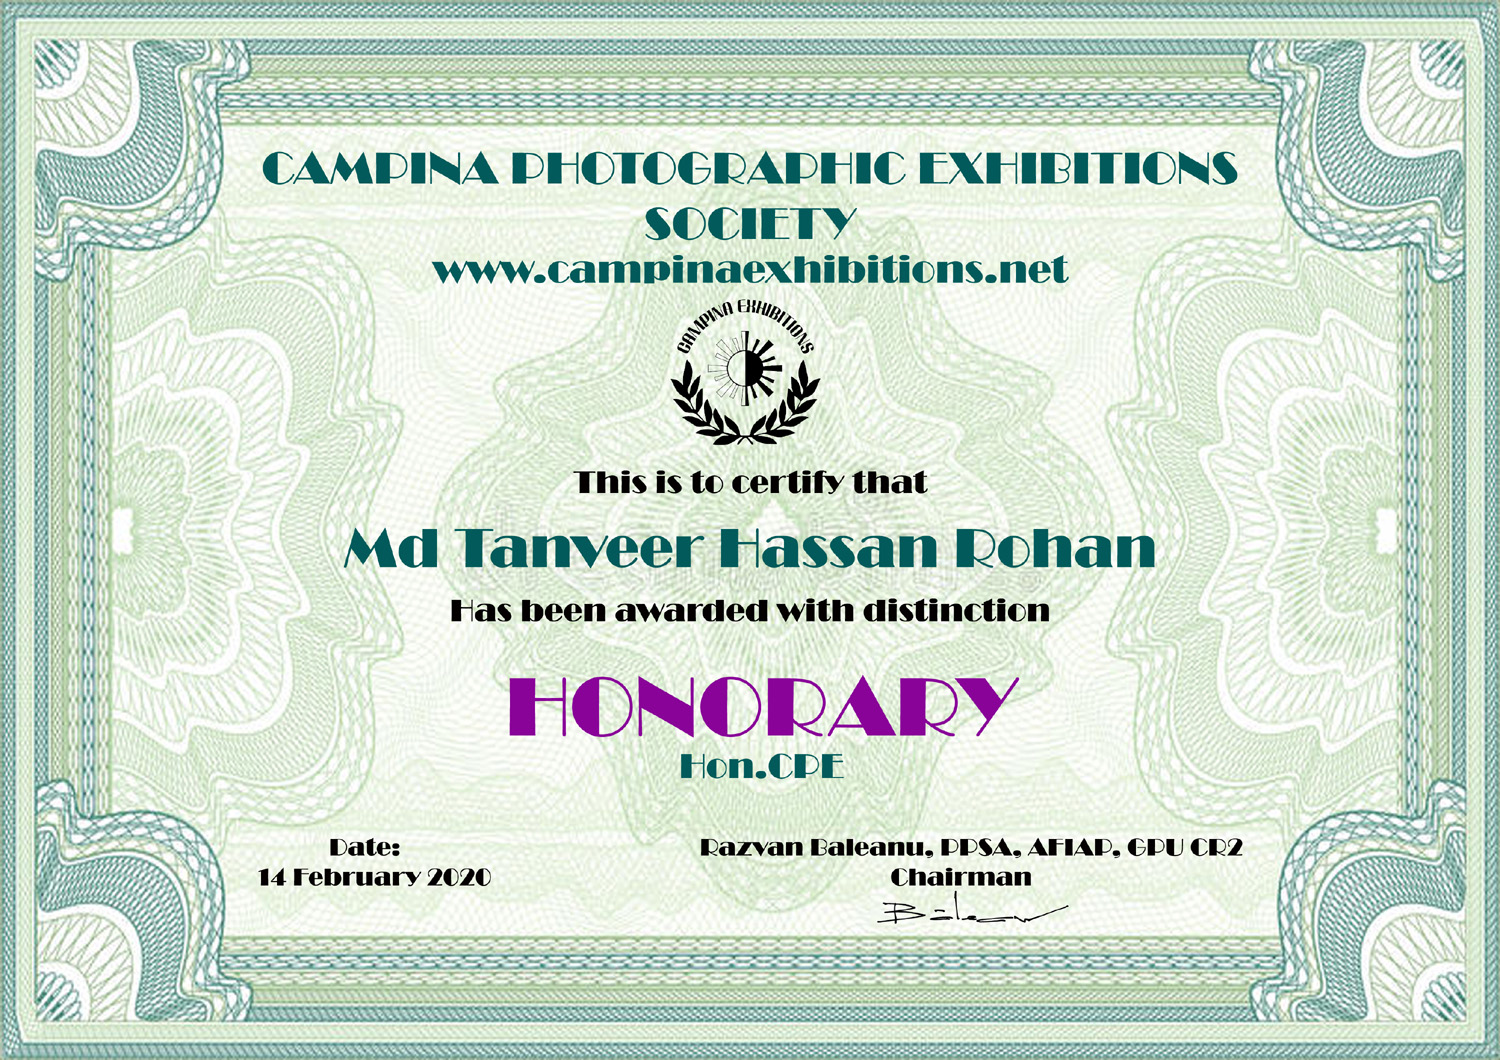 Md Tanveer Hassan Rohan - HONORARY - Hon.CPE - Campina Photographic Exhibitions Society